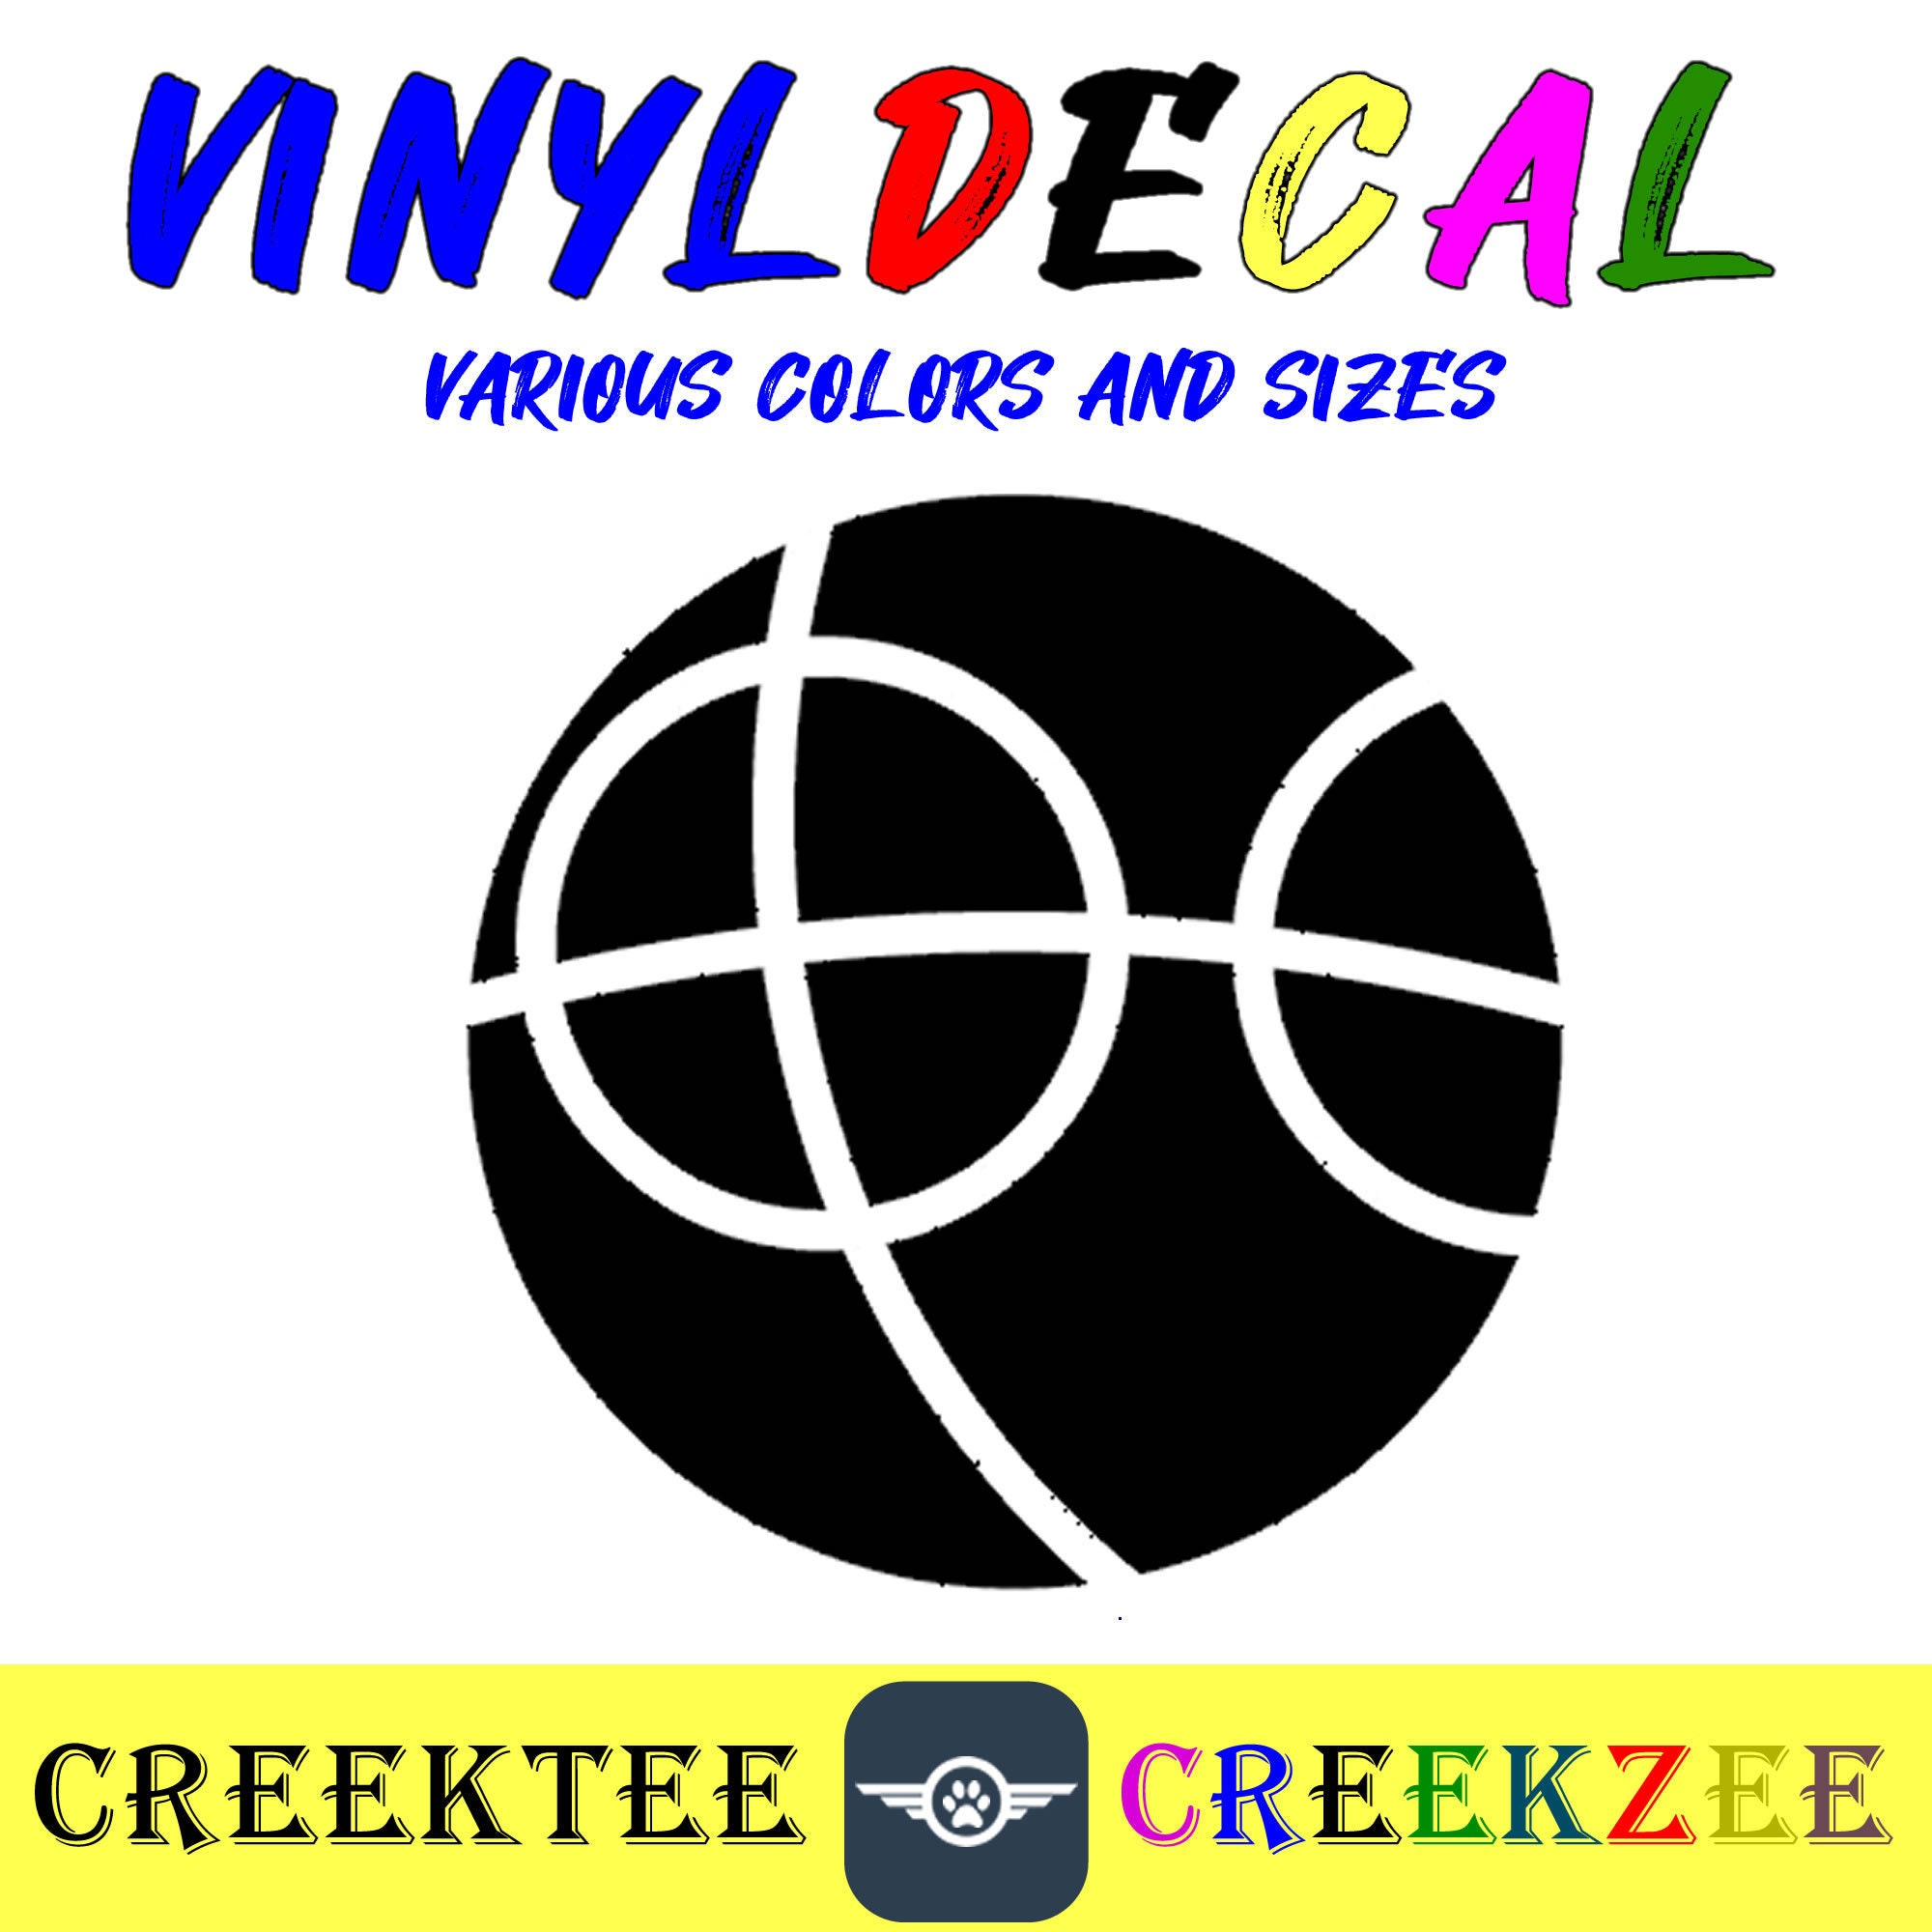 CAD$8.69 - Bocce Ball vinyl decal in various sizes or colors